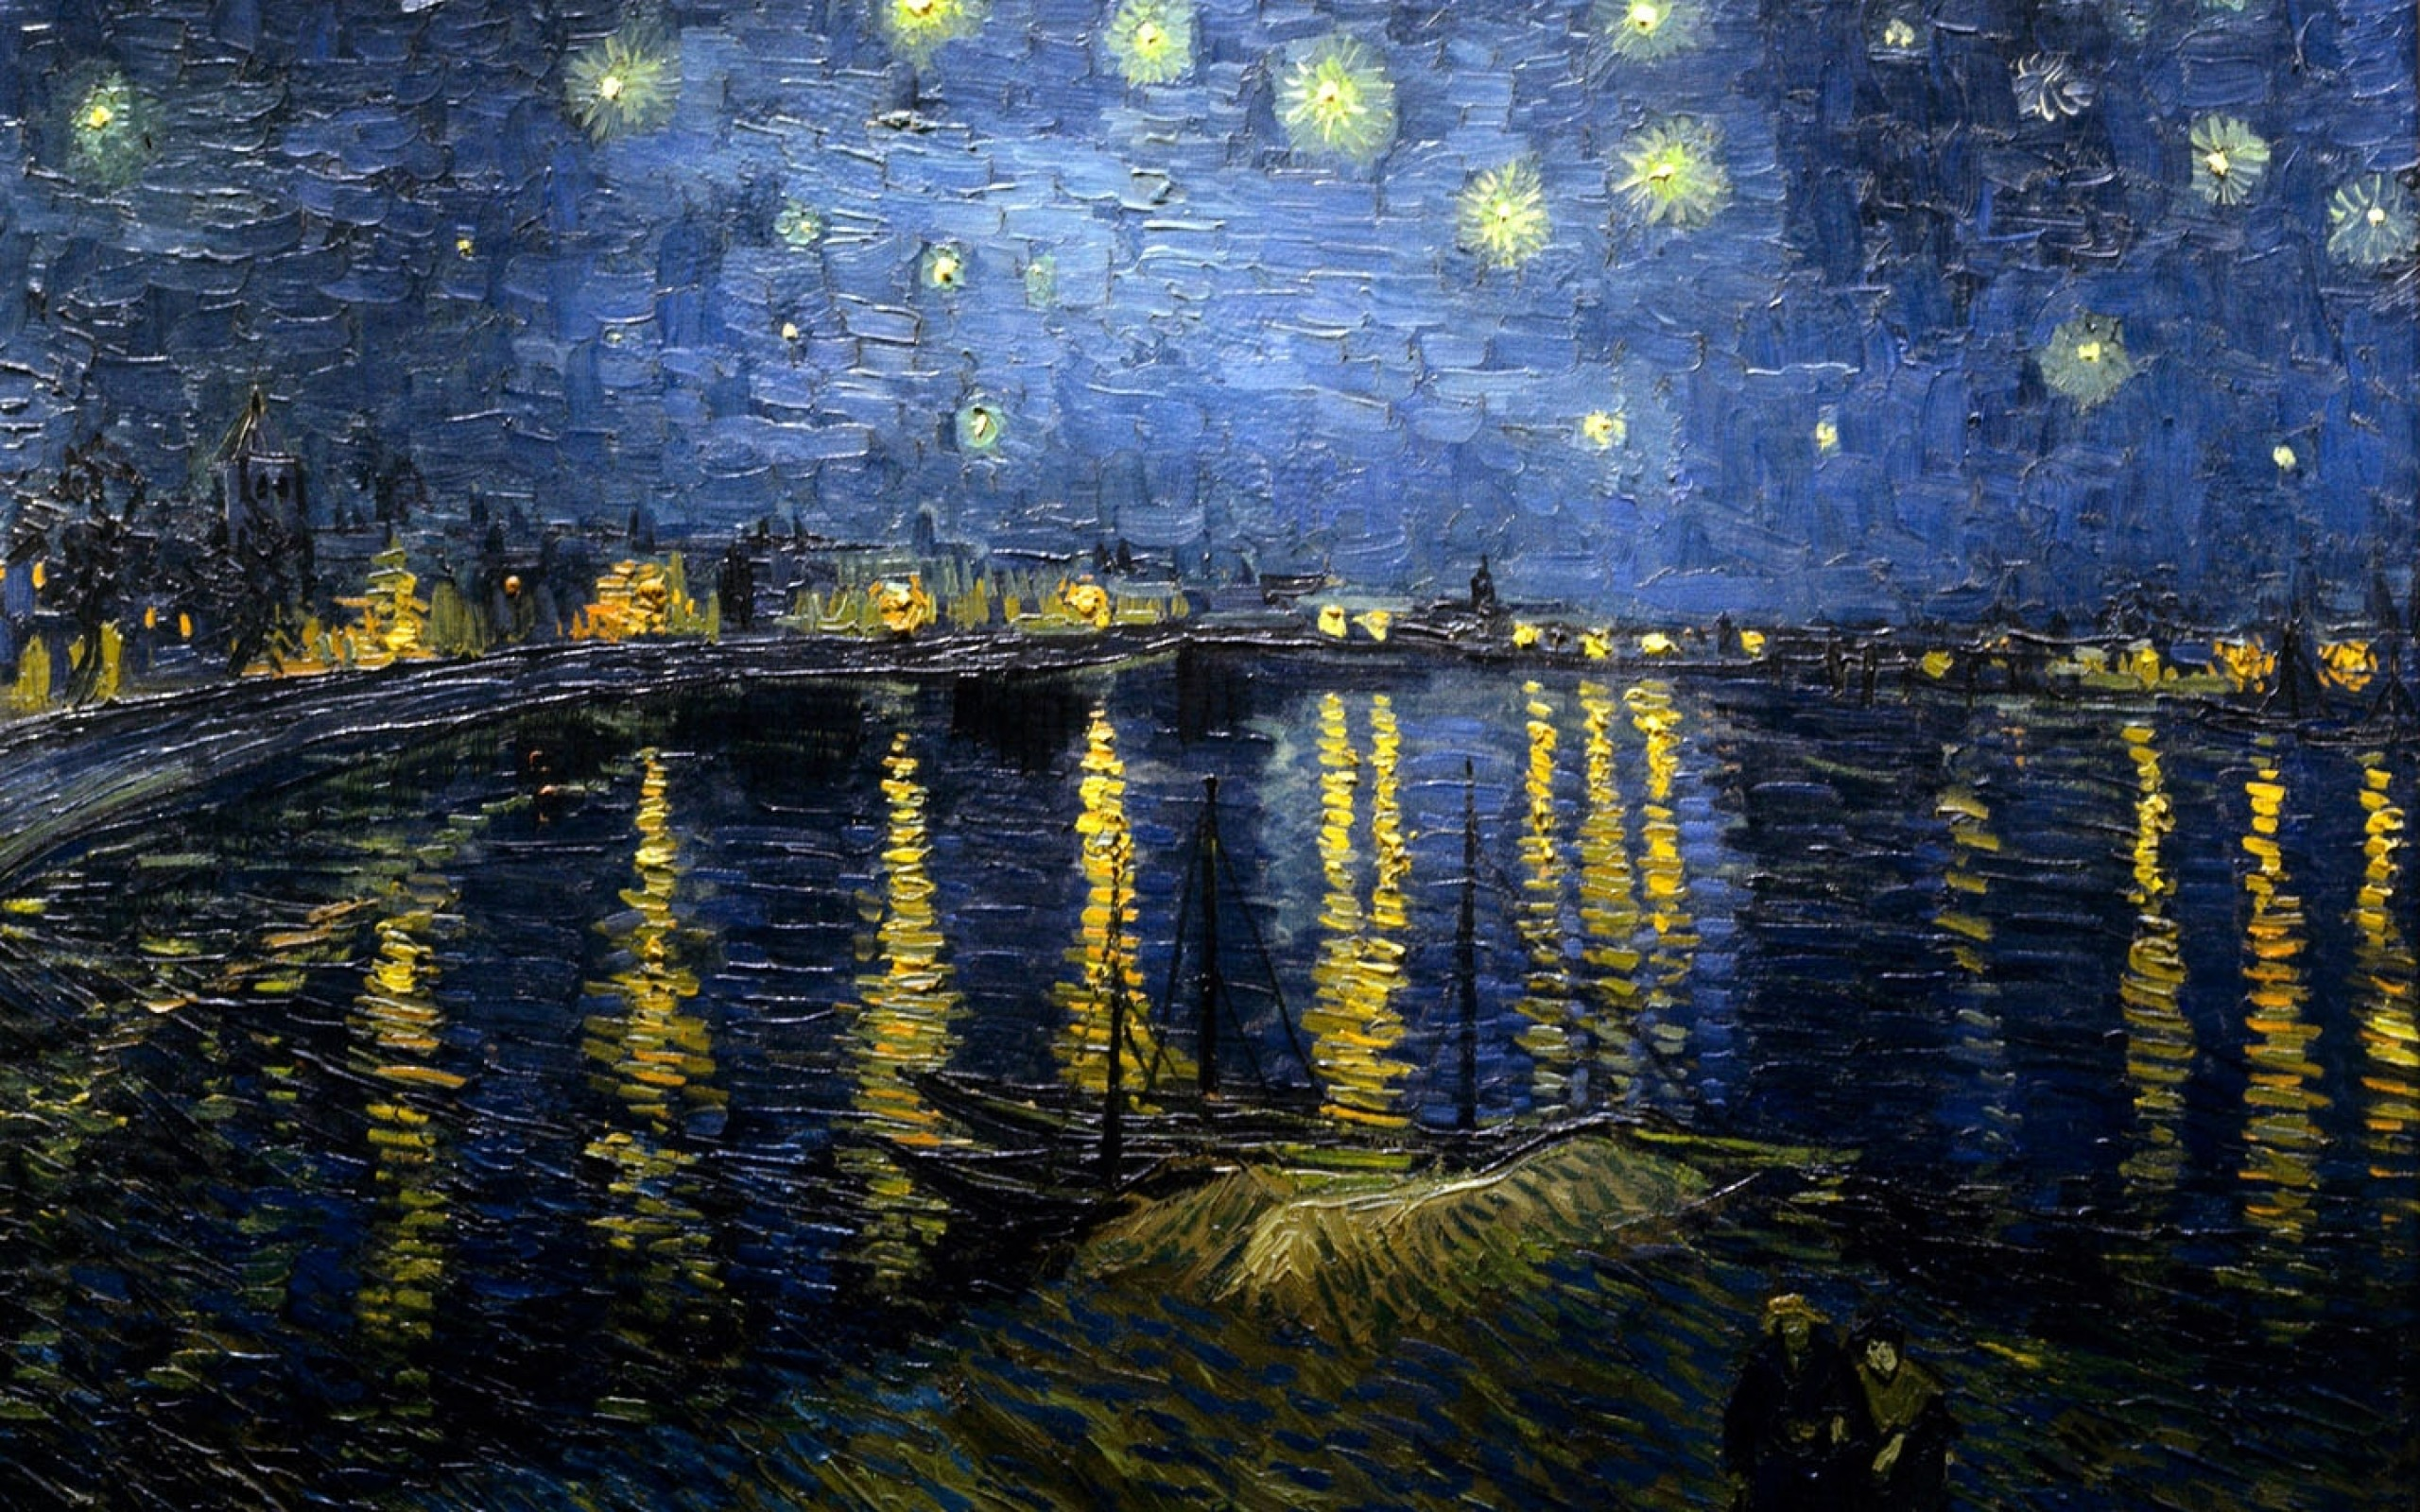 2560x1600 vincent van gogh starry night over the rhone 1440x900 wallpaper Art HD  Wallpaper